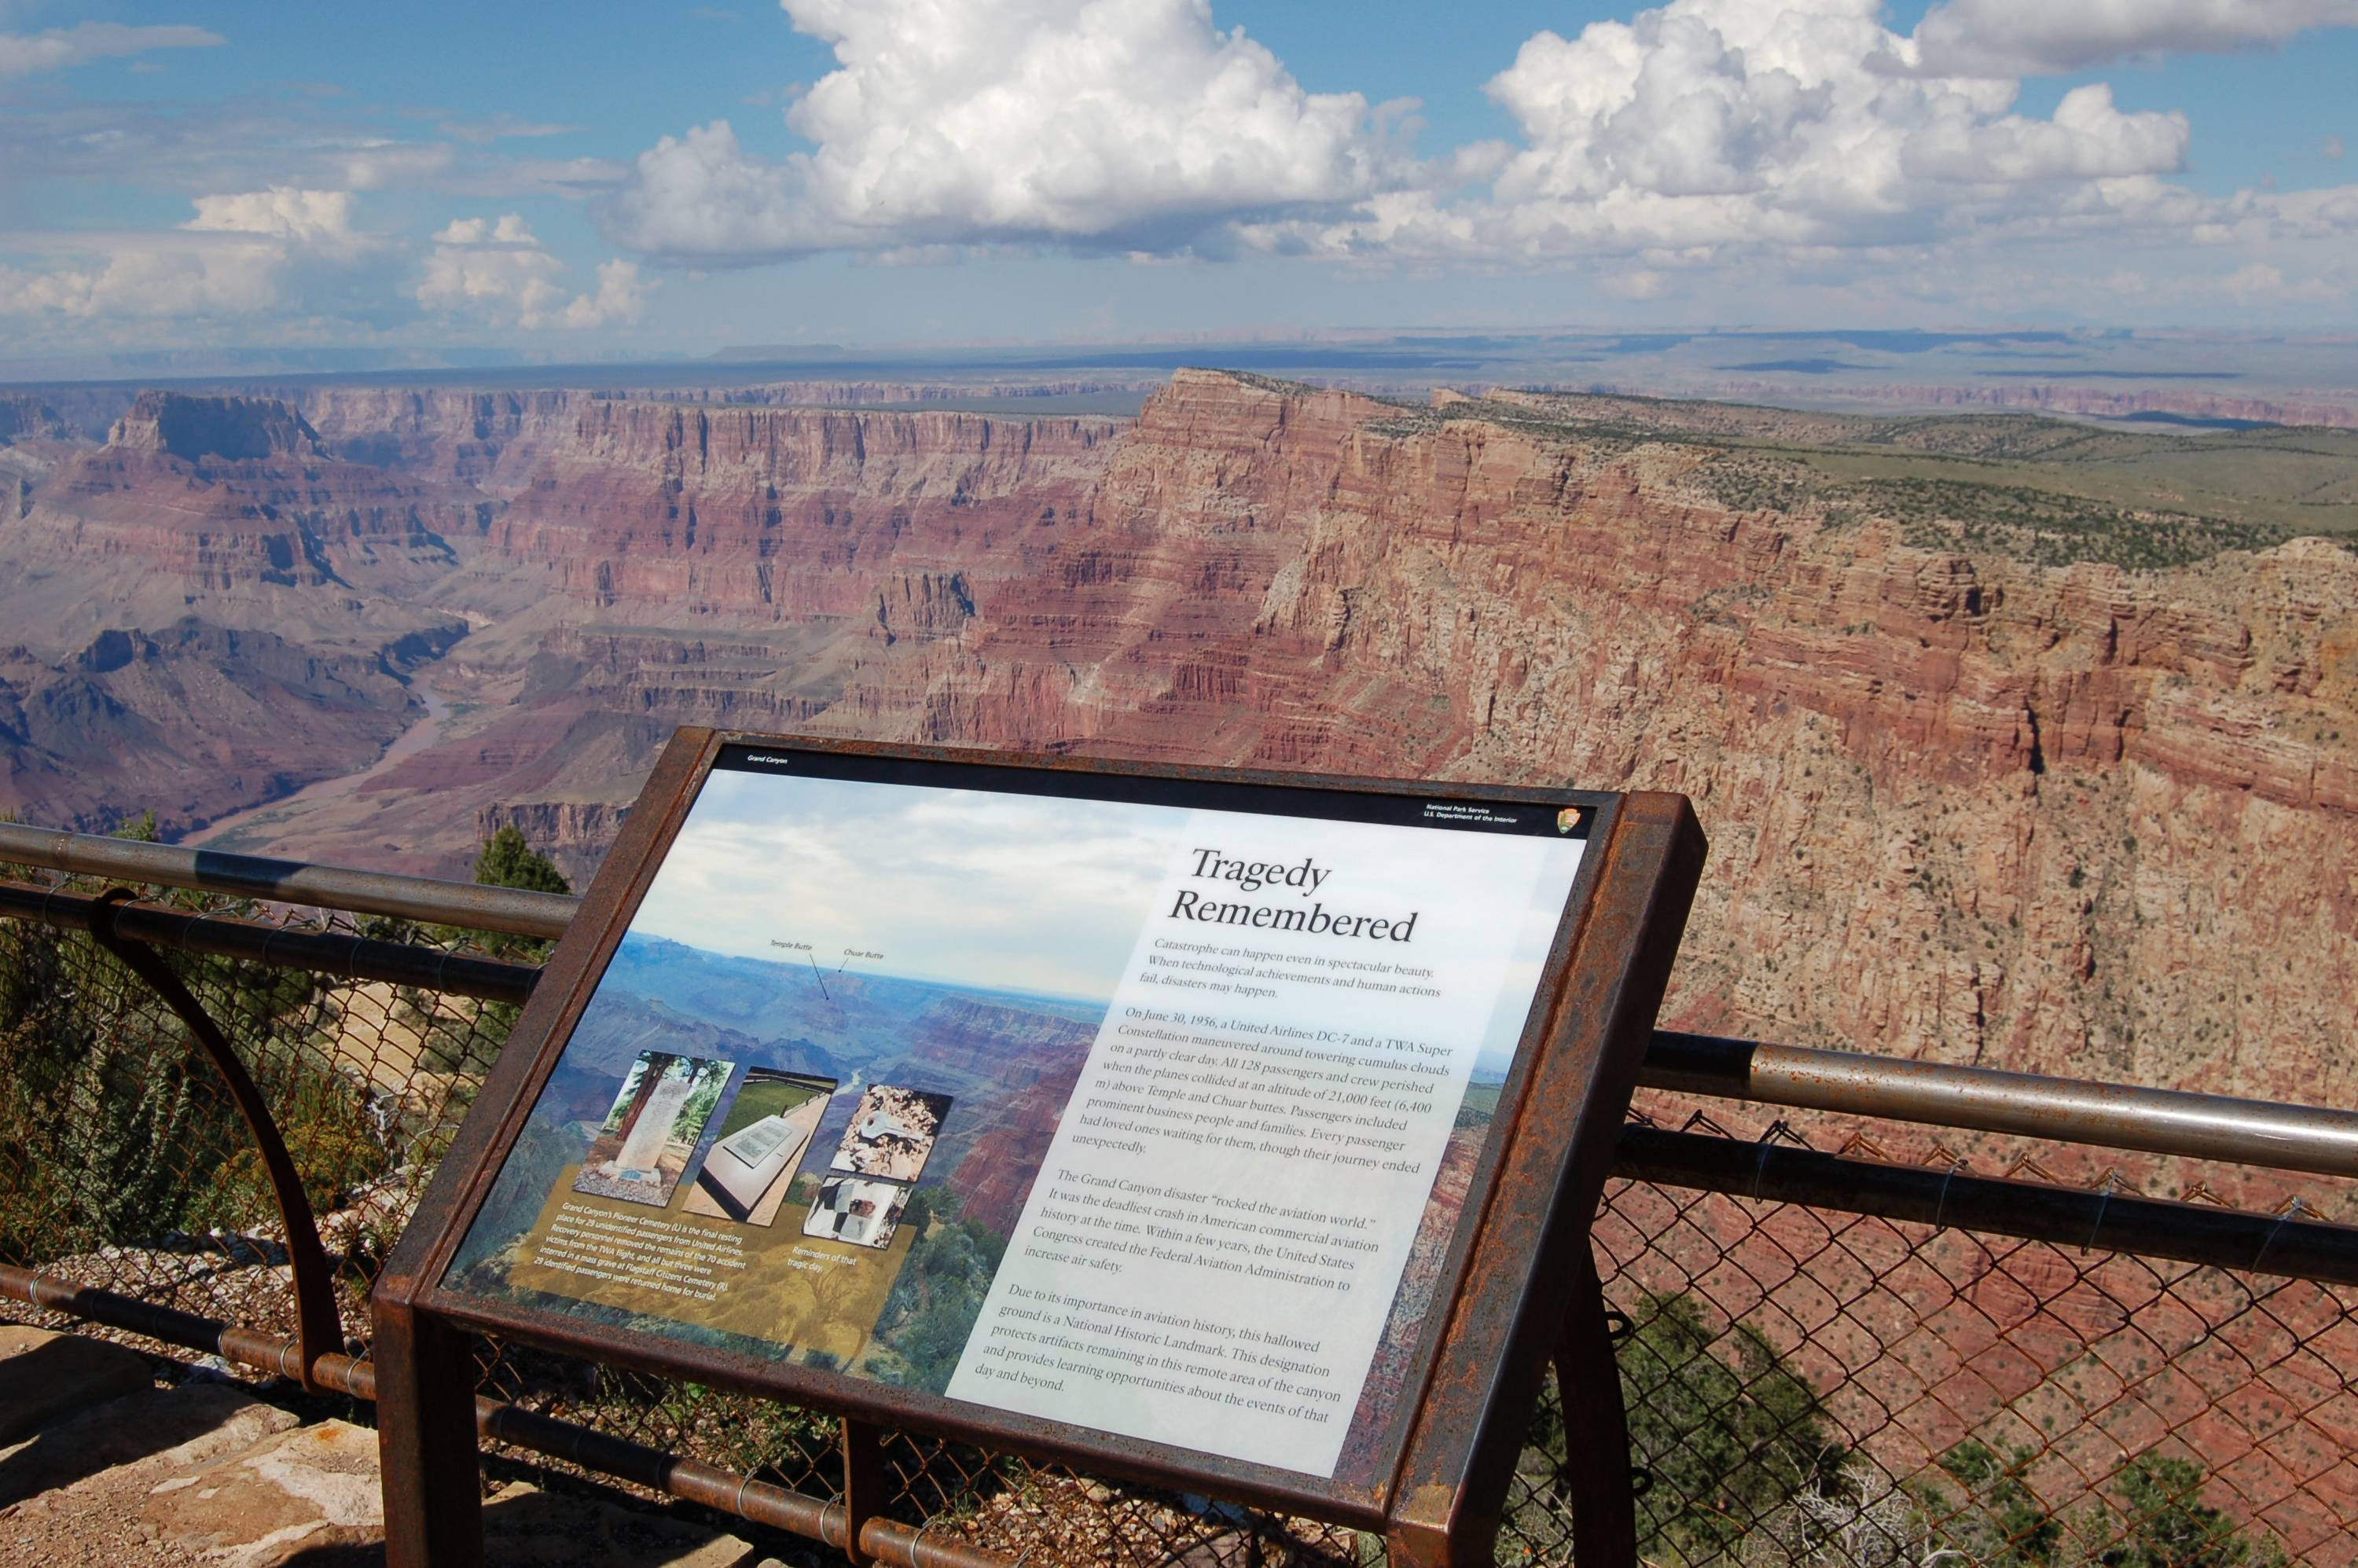 Two commercial airplanes, United Flight 718 and TWA Flight 2 crashed on June 30, 1956, over the Grand Canyon, killing all 128 people aboard in one of the deadliest aviation disasters in the U.S. On Tuesday, July 8, 2014, the Grand Canyon National Park will mark the designation of the crash site as a National Historic Landmark in a ceremony overlooking the gorge where the wreckage was scattered over 1.5 square miles.